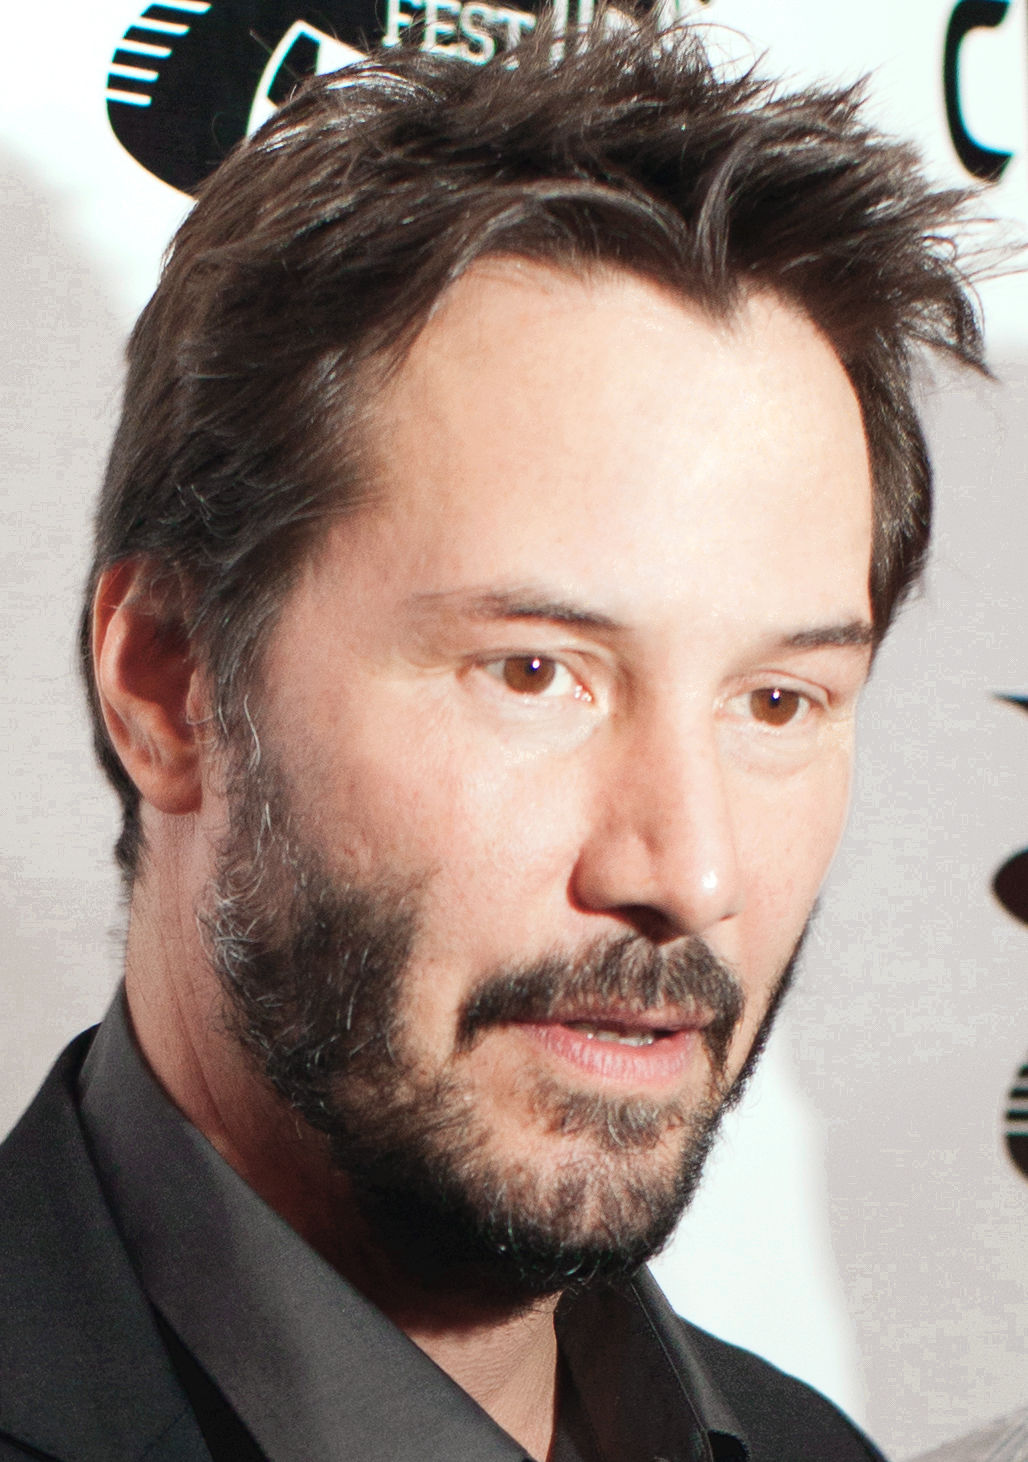 Photo of Keanu Reeves: Canadian actor, producer, director and musician